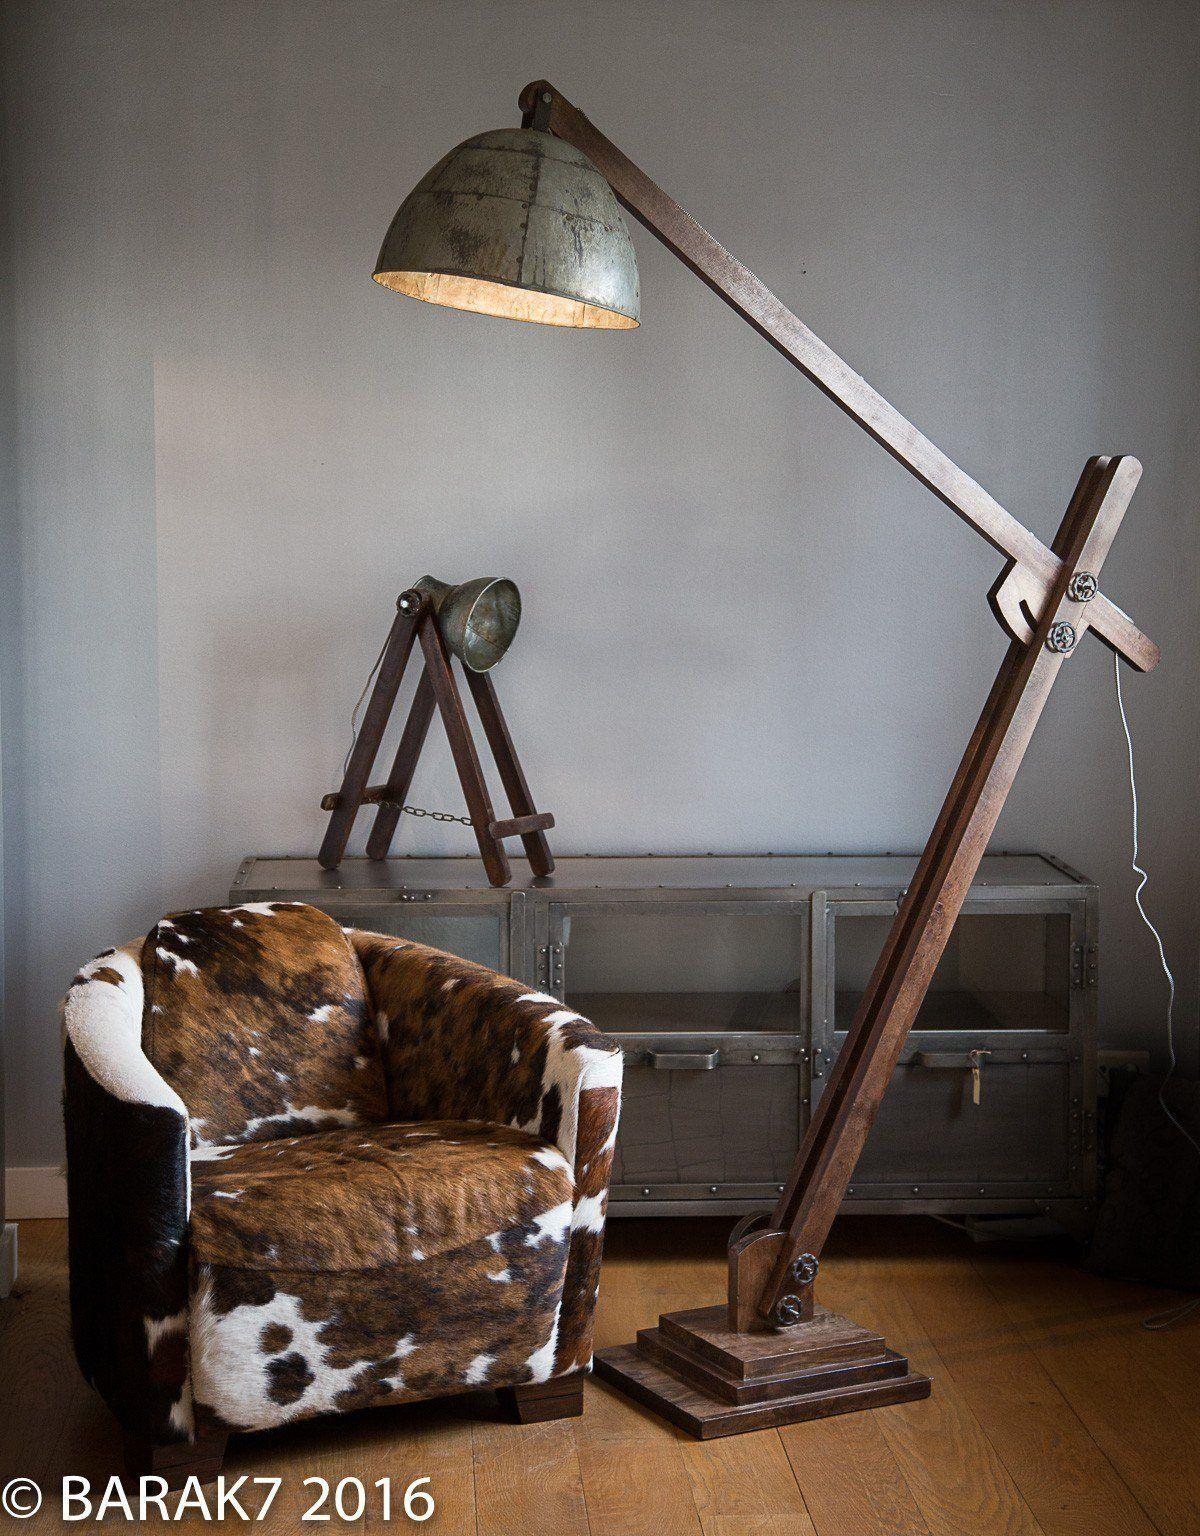 lampe industrielle sur pied acrobat aluminium recycl. Black Bedroom Furniture Sets. Home Design Ideas